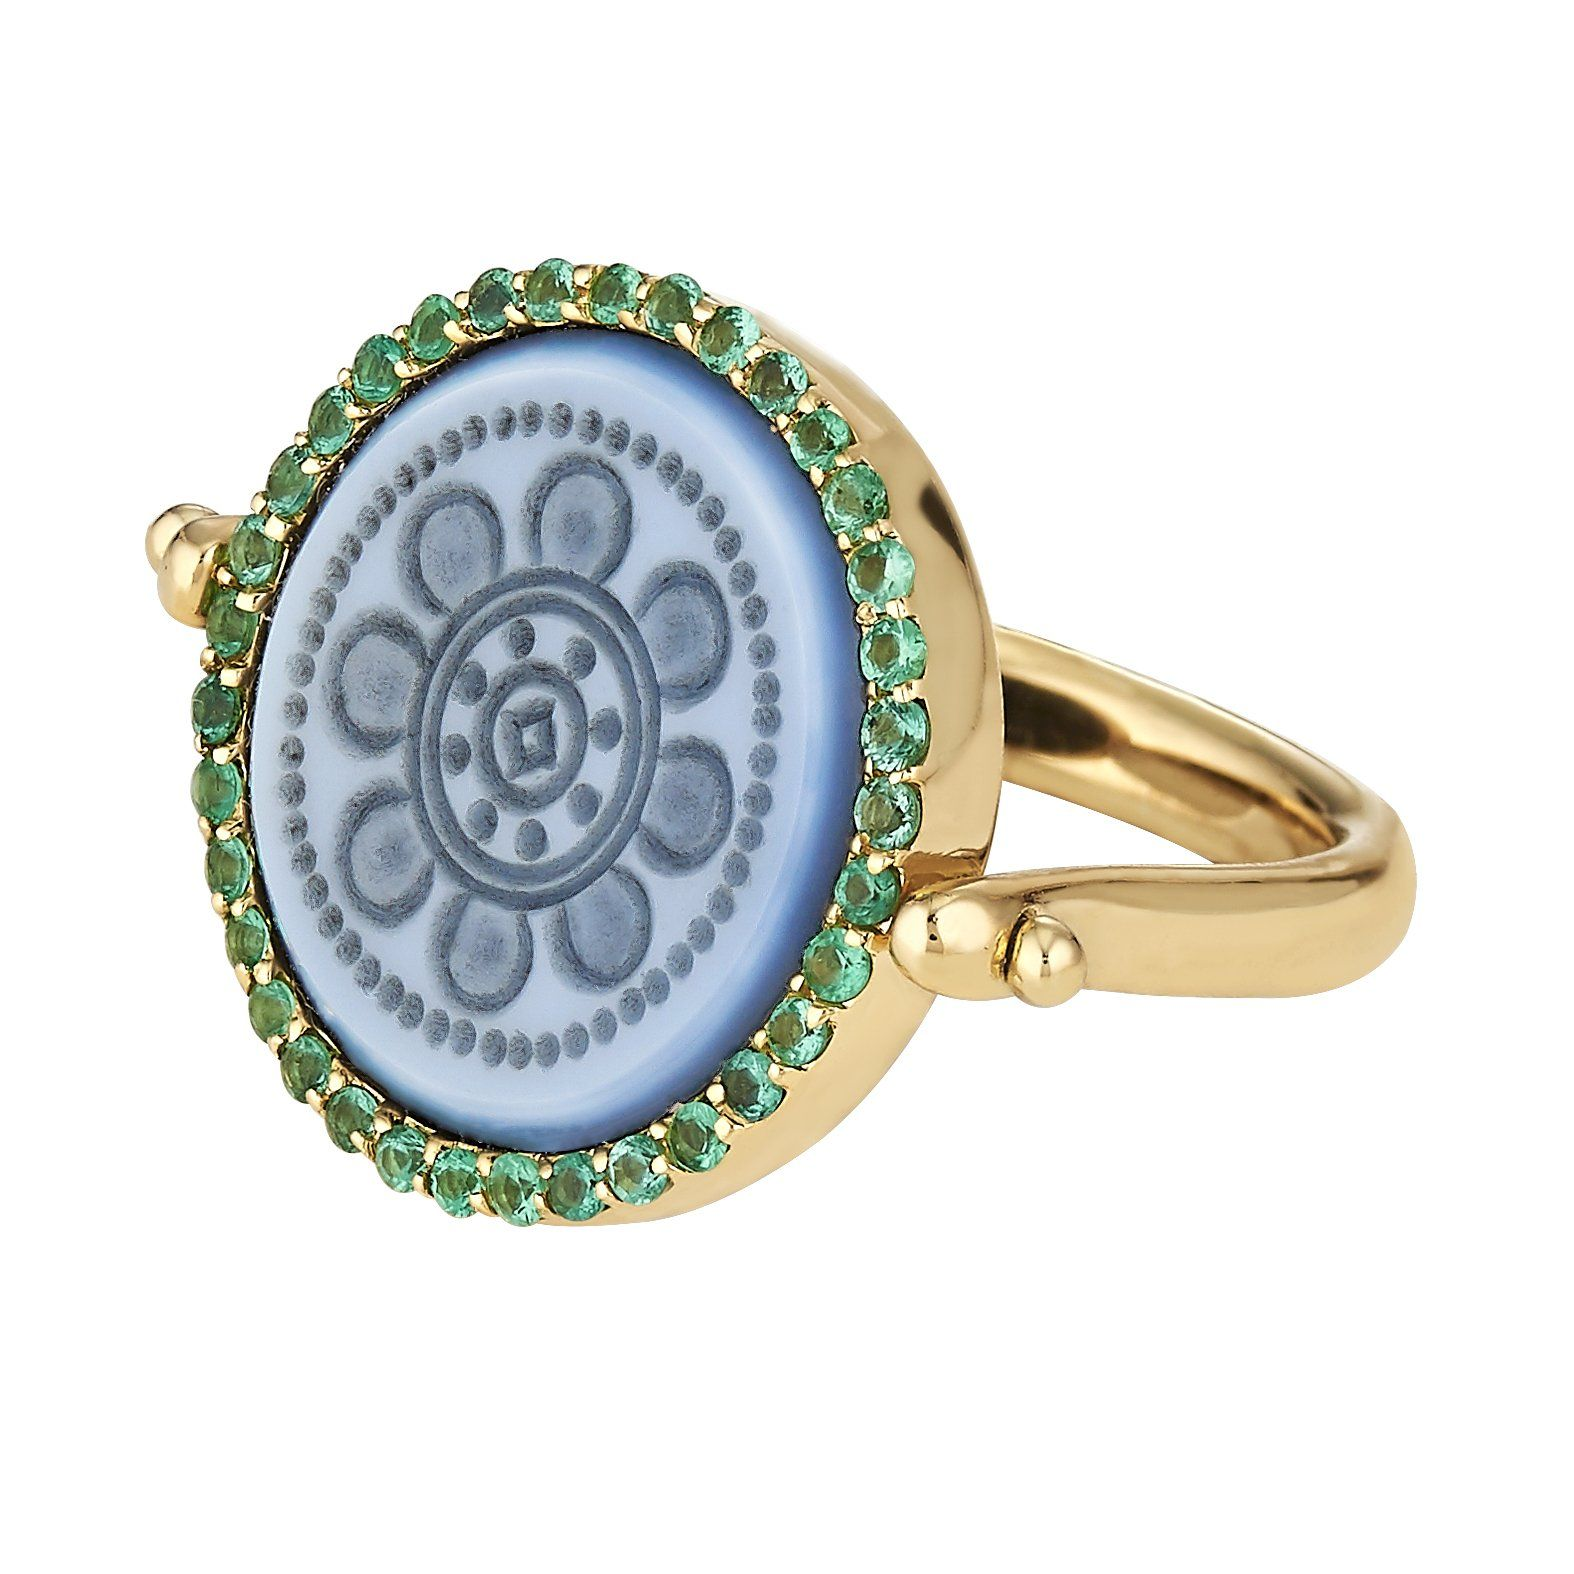 One of a kind 18k bespoke flip ring with pave emerald bezel. 16mm round stone. This new version of our classic signet ring can be designed with any crest or motif. Intaglio carved in Spain & handcrafted in NYC. Personalized and custom designed by ASHA. Once your order is placed, an ASHA team member will reach out to gather personal details & design criteria to present you with a bespoke sketch for approval. Additional fees incurred for second engraving on flip side. Once finalized, your ring wil